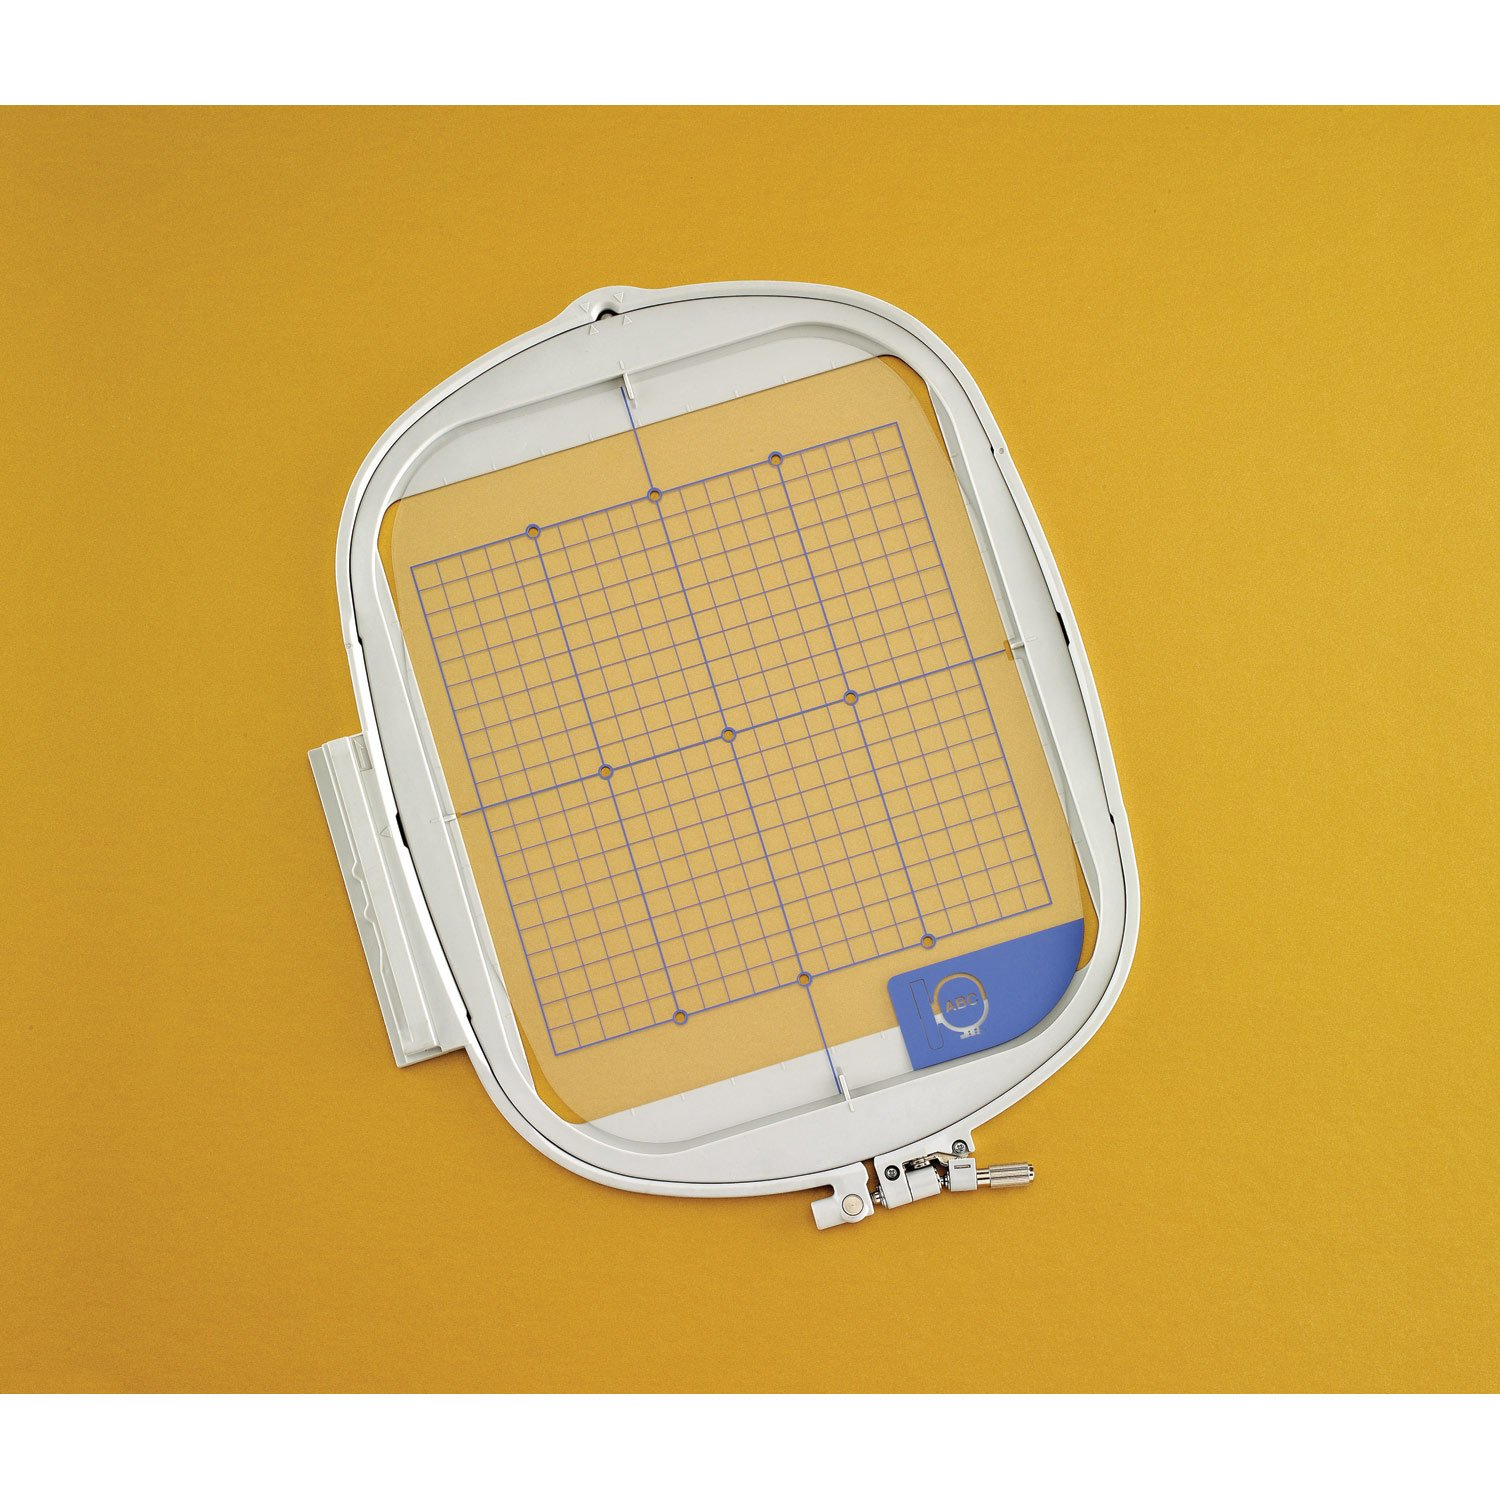 Embroidery Hoop with Grid - 8 x 8  for BLSO BLDY